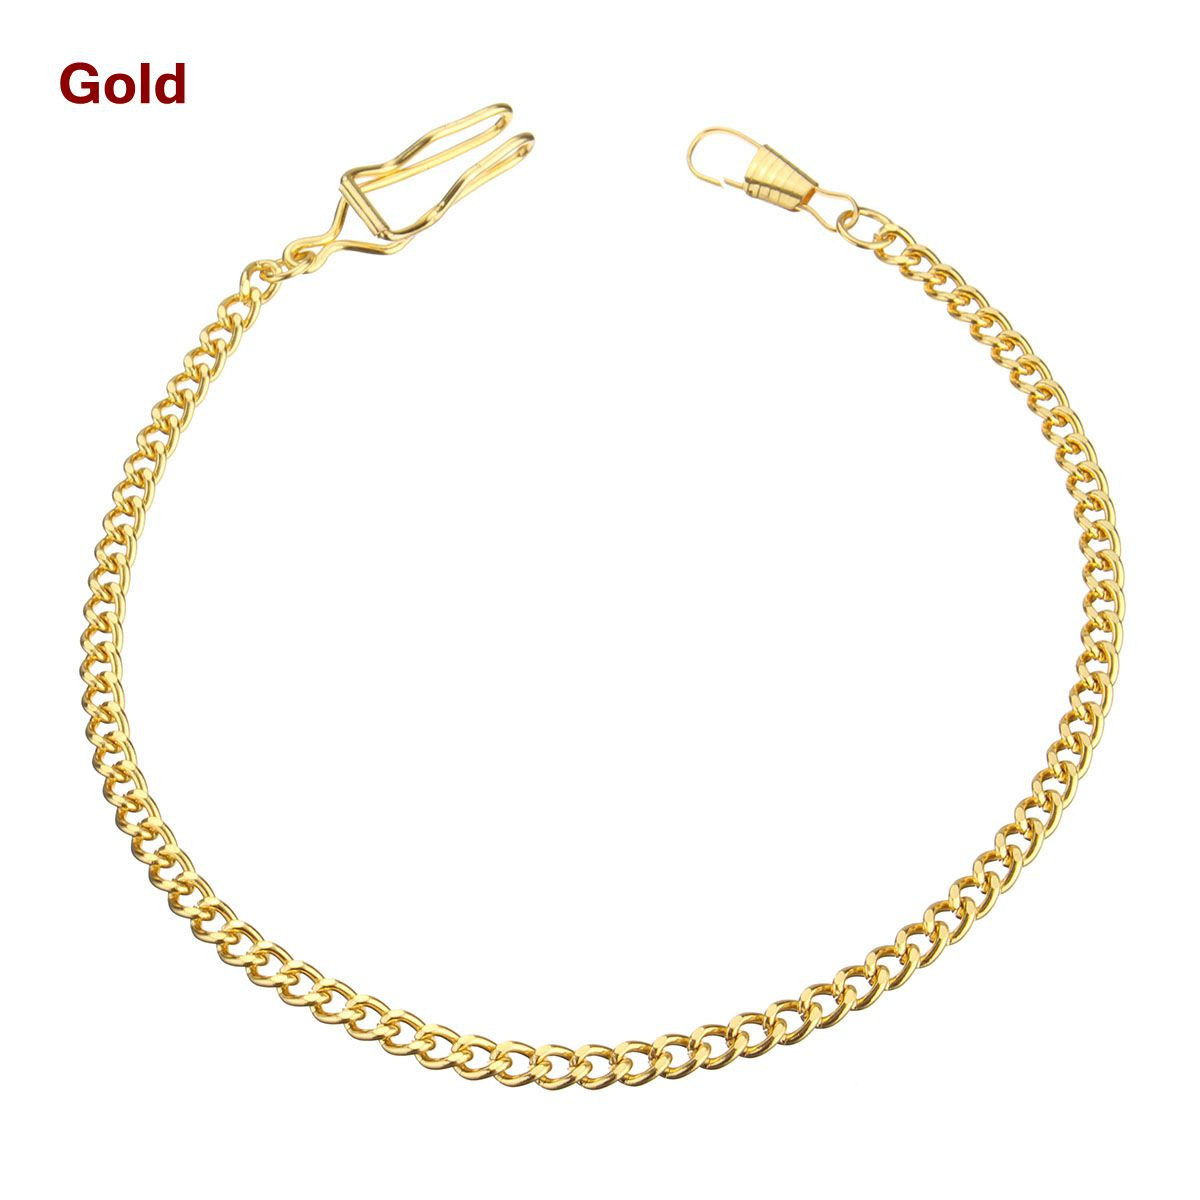 girls bronze drink for best necklace pocket fob vintage gold wonderland alice gifts chain product me in fashion tag ladies women new pendant watches with watch